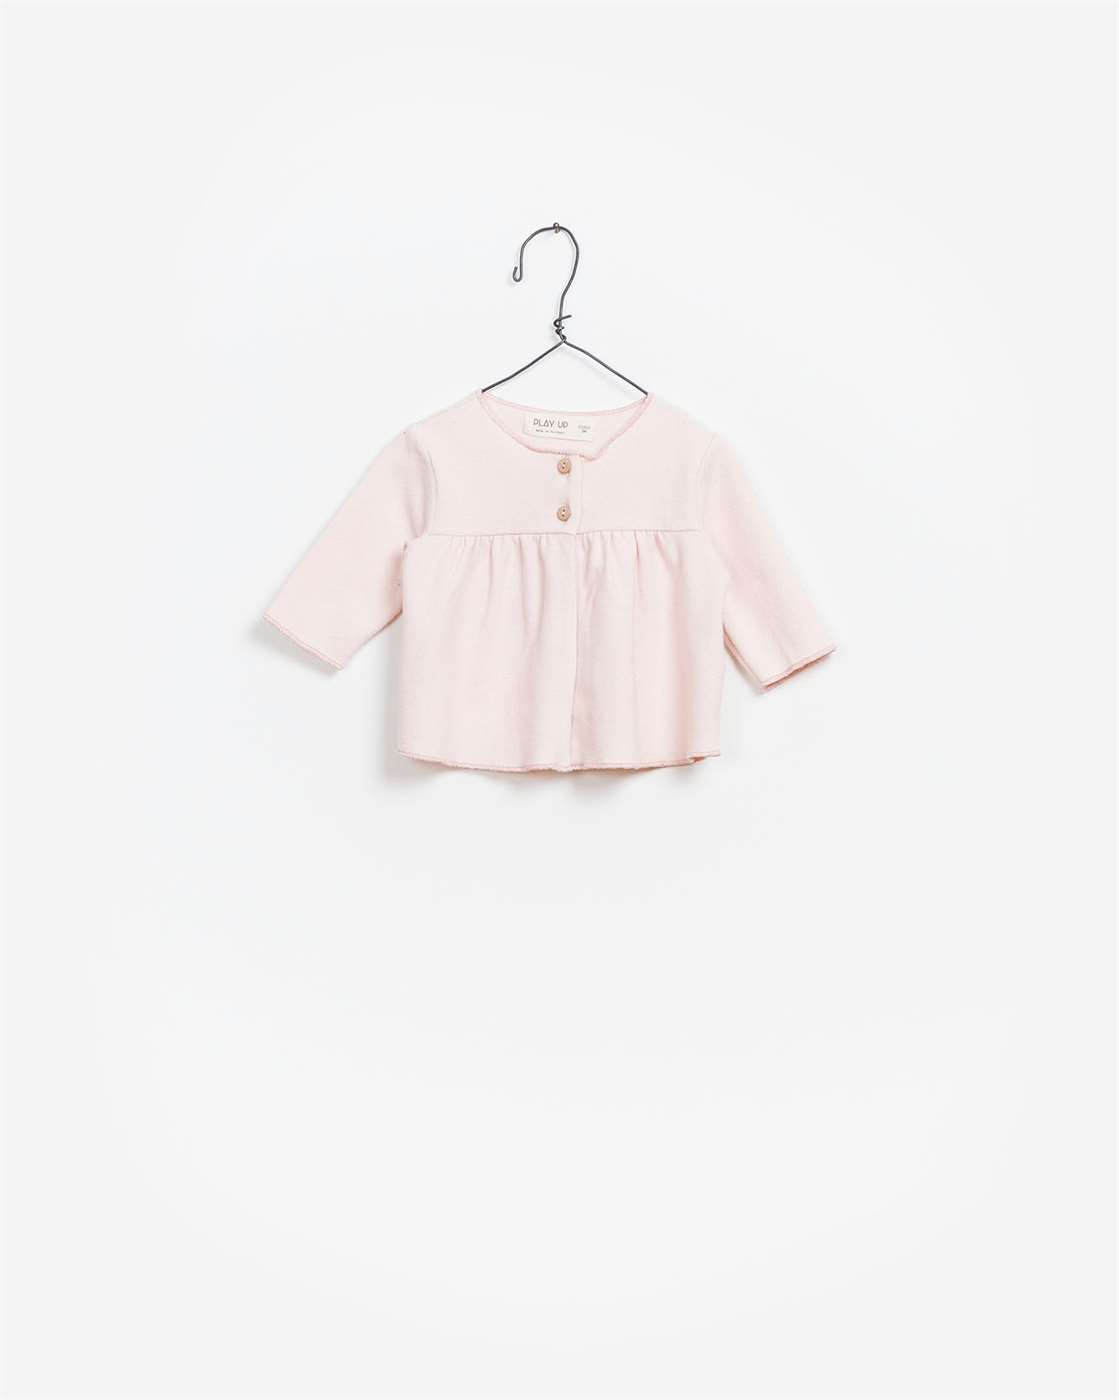 BeeBoo|BeeBoo PlayUp vêtements bébé baby clothes blouse interlock rose pink